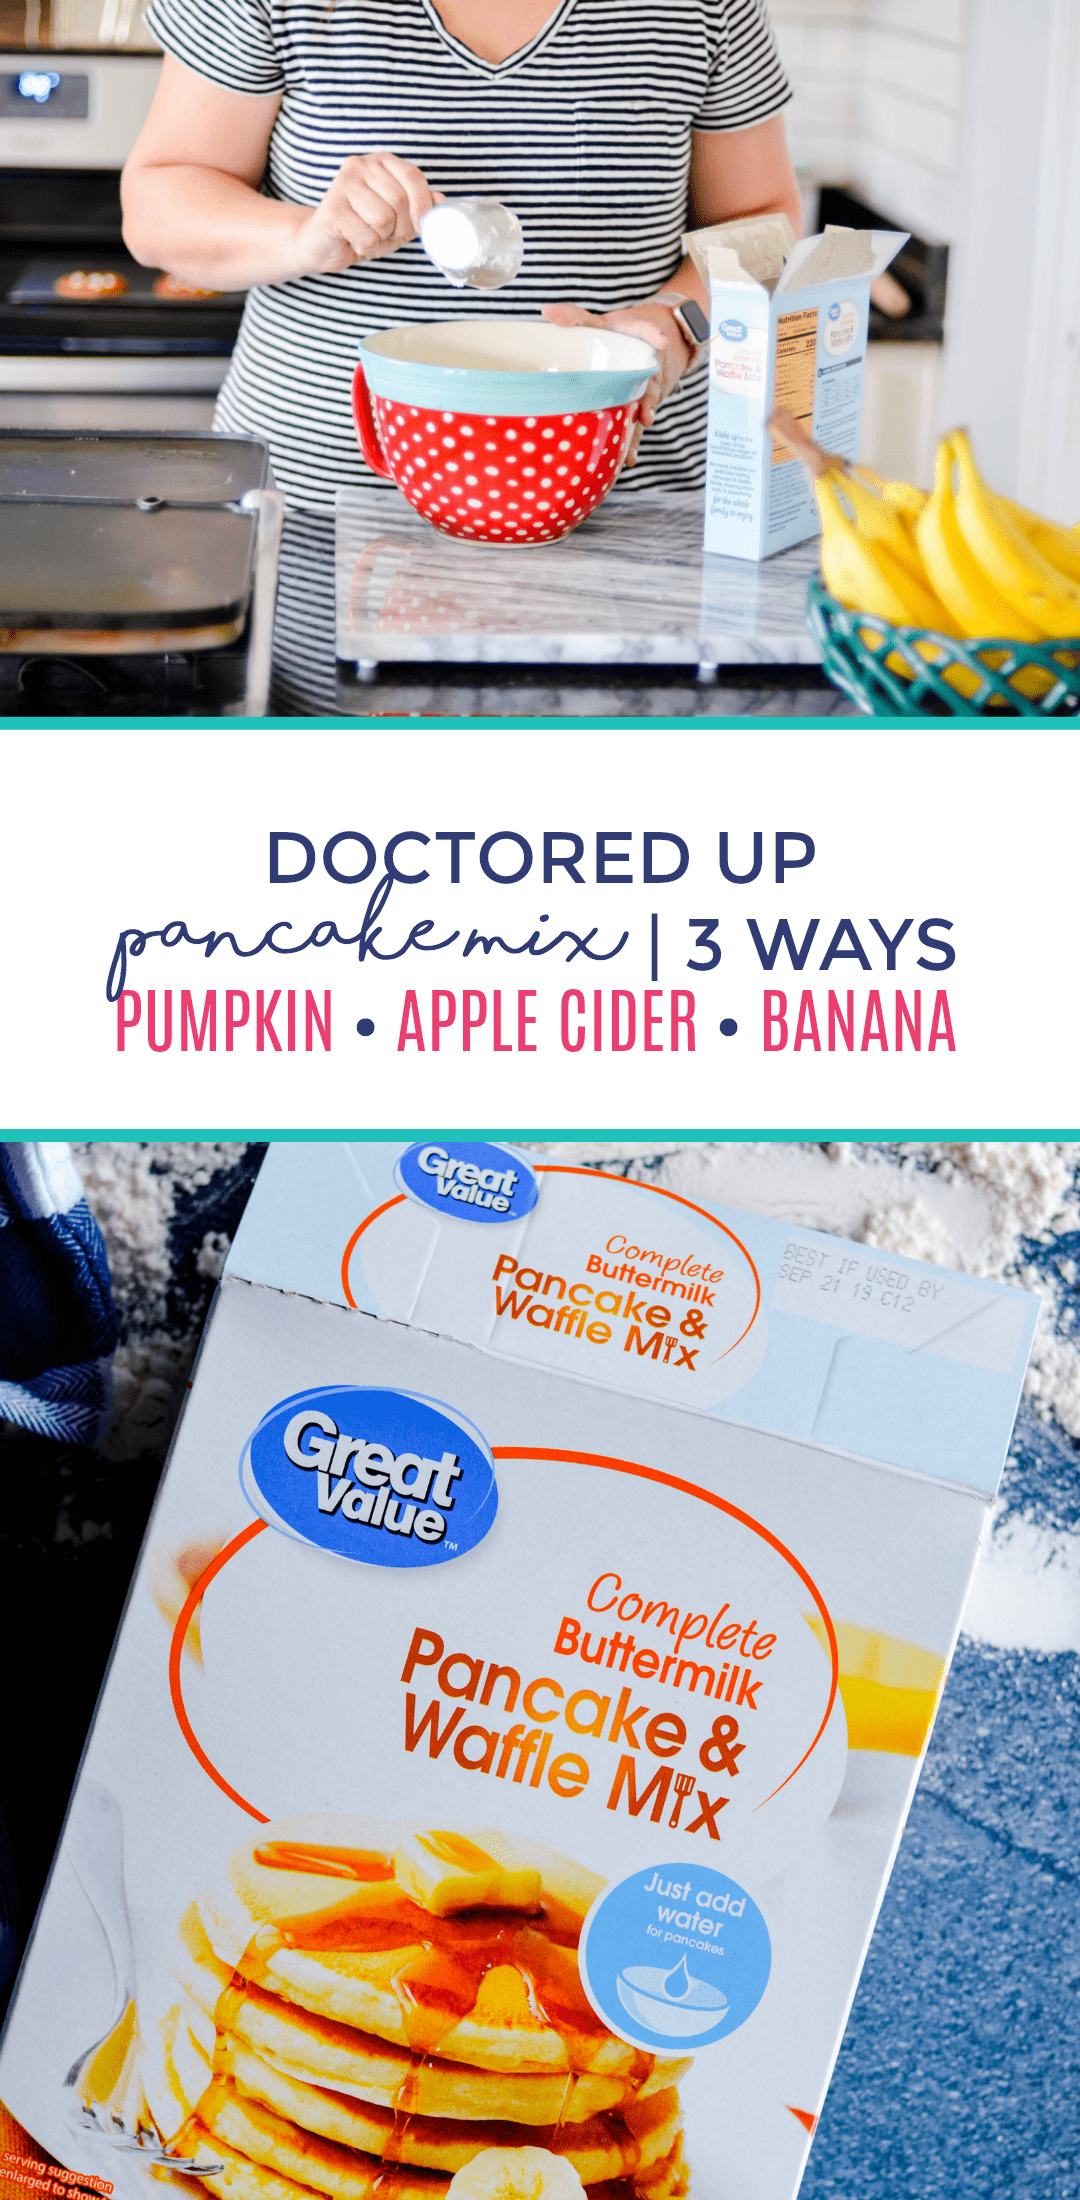 Learn how to make the BEST Doctored Up Pancake Mix 3 Ways! I'm sharing quick and easy ways to make pumpkin chocolate chip pancakes, apple cider pancakes, and banana pancakes that all start with a mix.